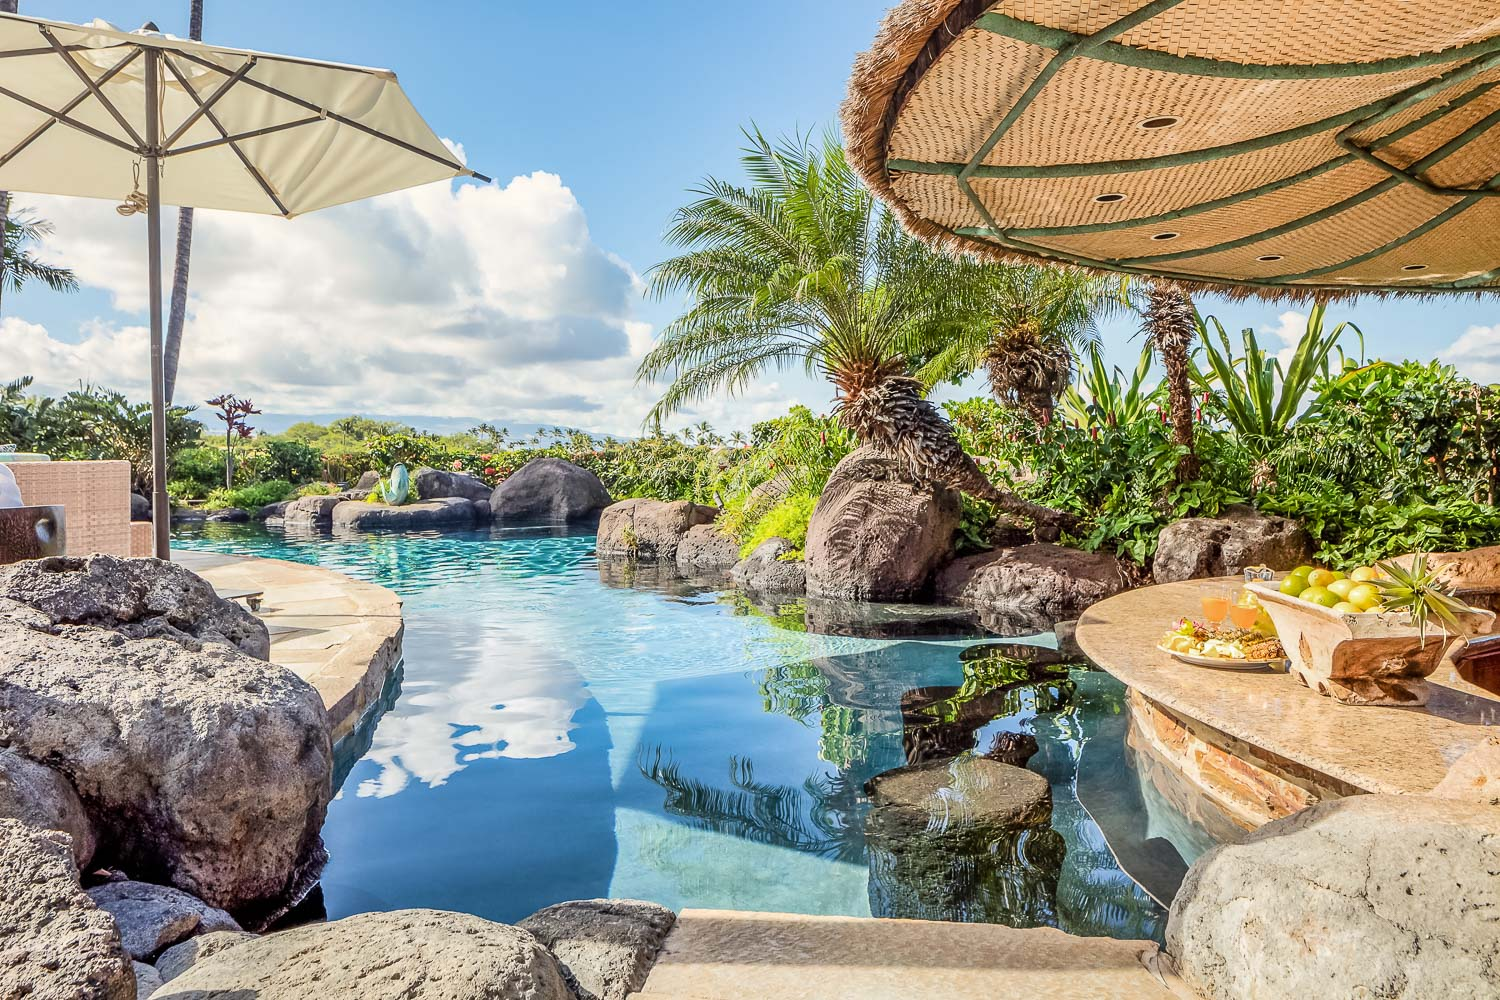 Apartment Fairway North 5 Bedroom 5 Bath Mauna Kea Resort  Big Island  Hawaii photo 20191372